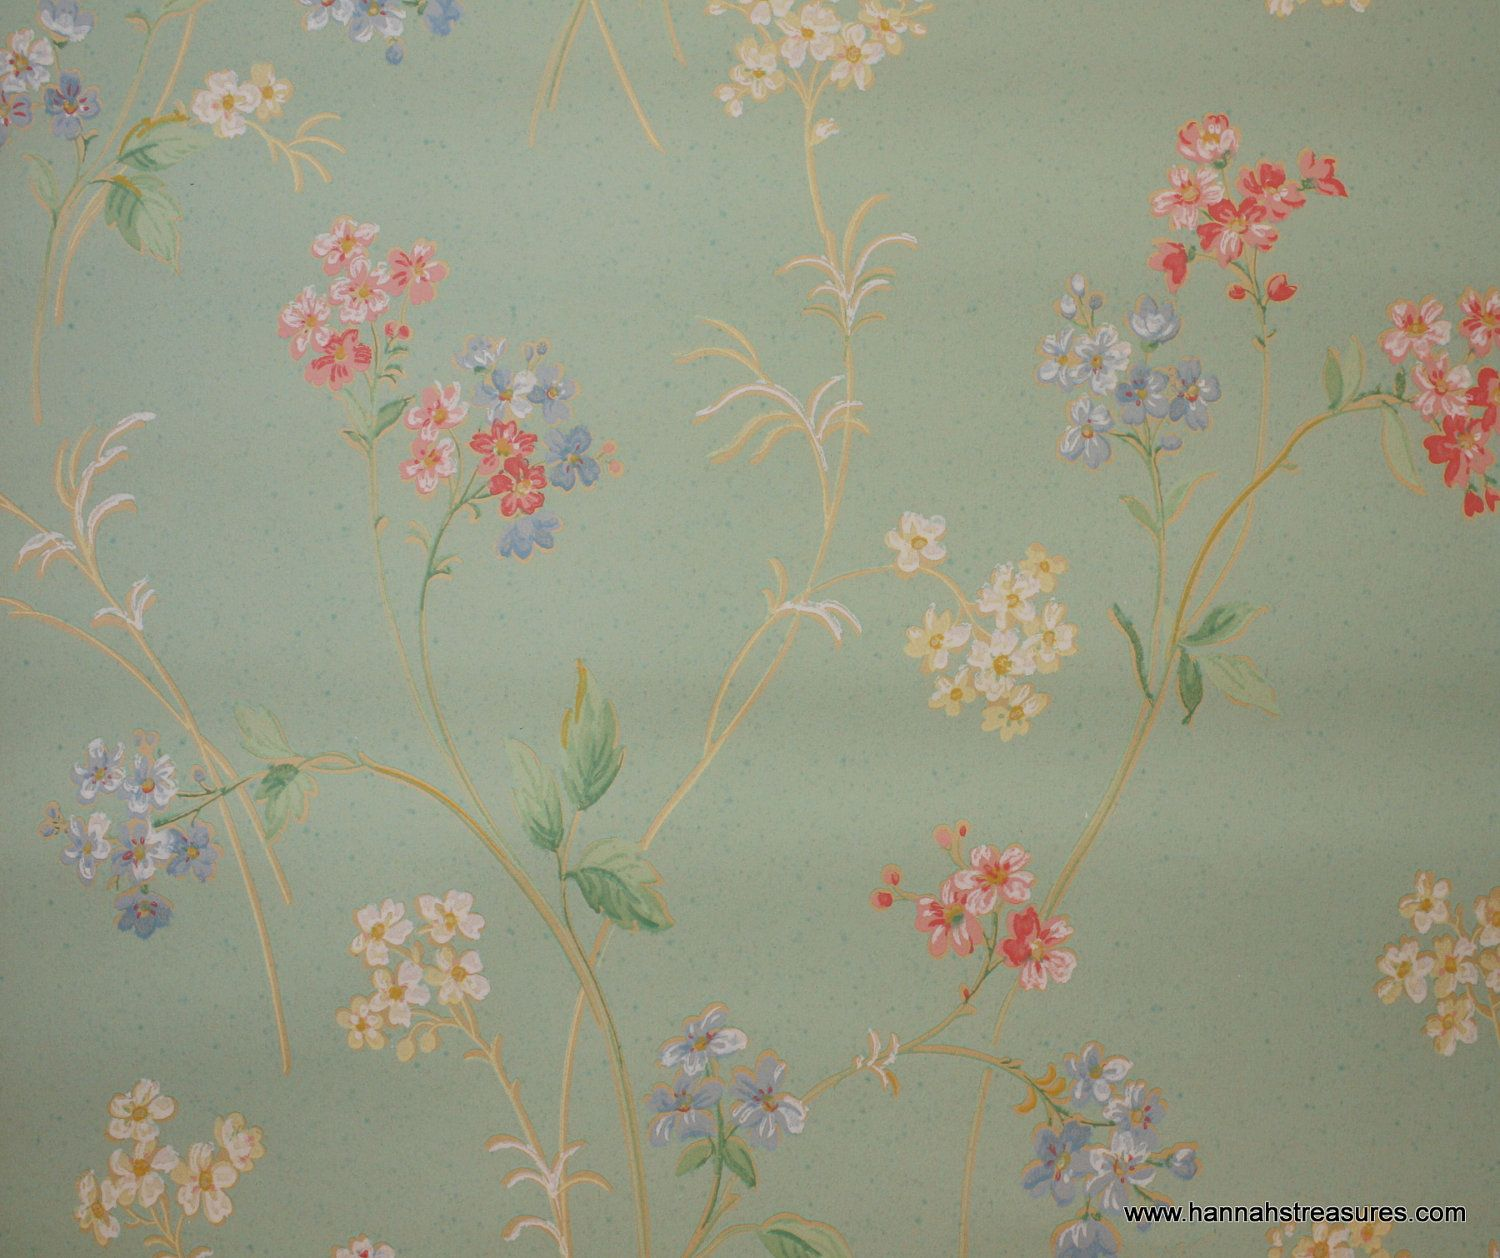 Muted Blue And Floral Red: 1930's Vintage Wallpaper Pretty Pastel Wispy Pink Blue And